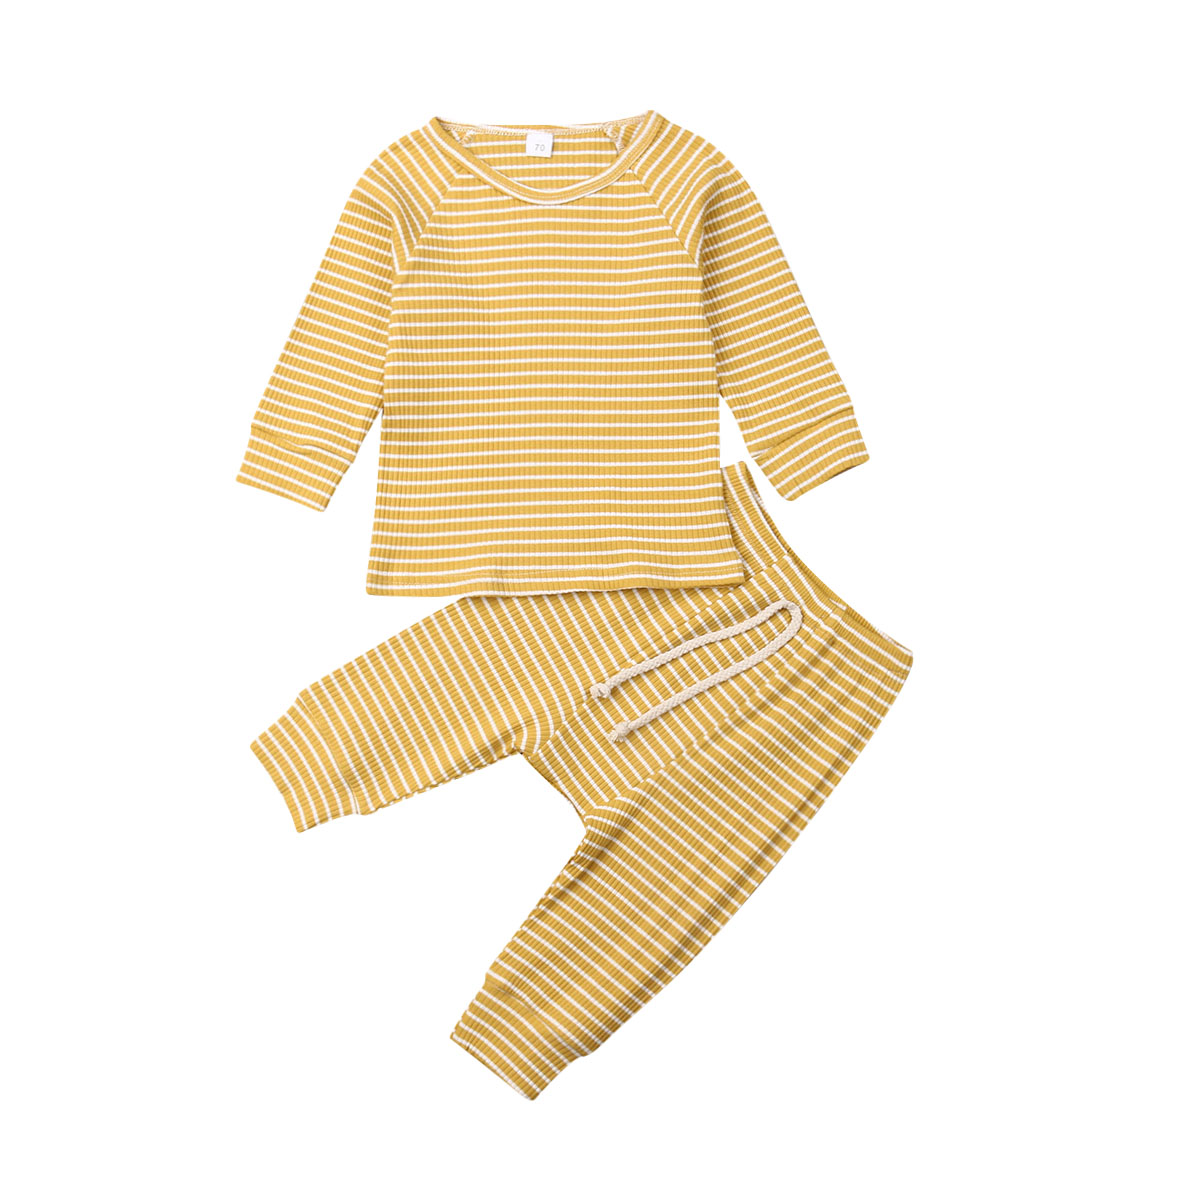 Knitted Cotton Newborn <font><b>baby</b></font> girl boy clothes Striped <font><b>Tshirt</b></font> Tops Pants Leggings Outfit 2PCS <font><b>Baby</b></font> bebe Clothing <font><b>Set</b></font> for infant image